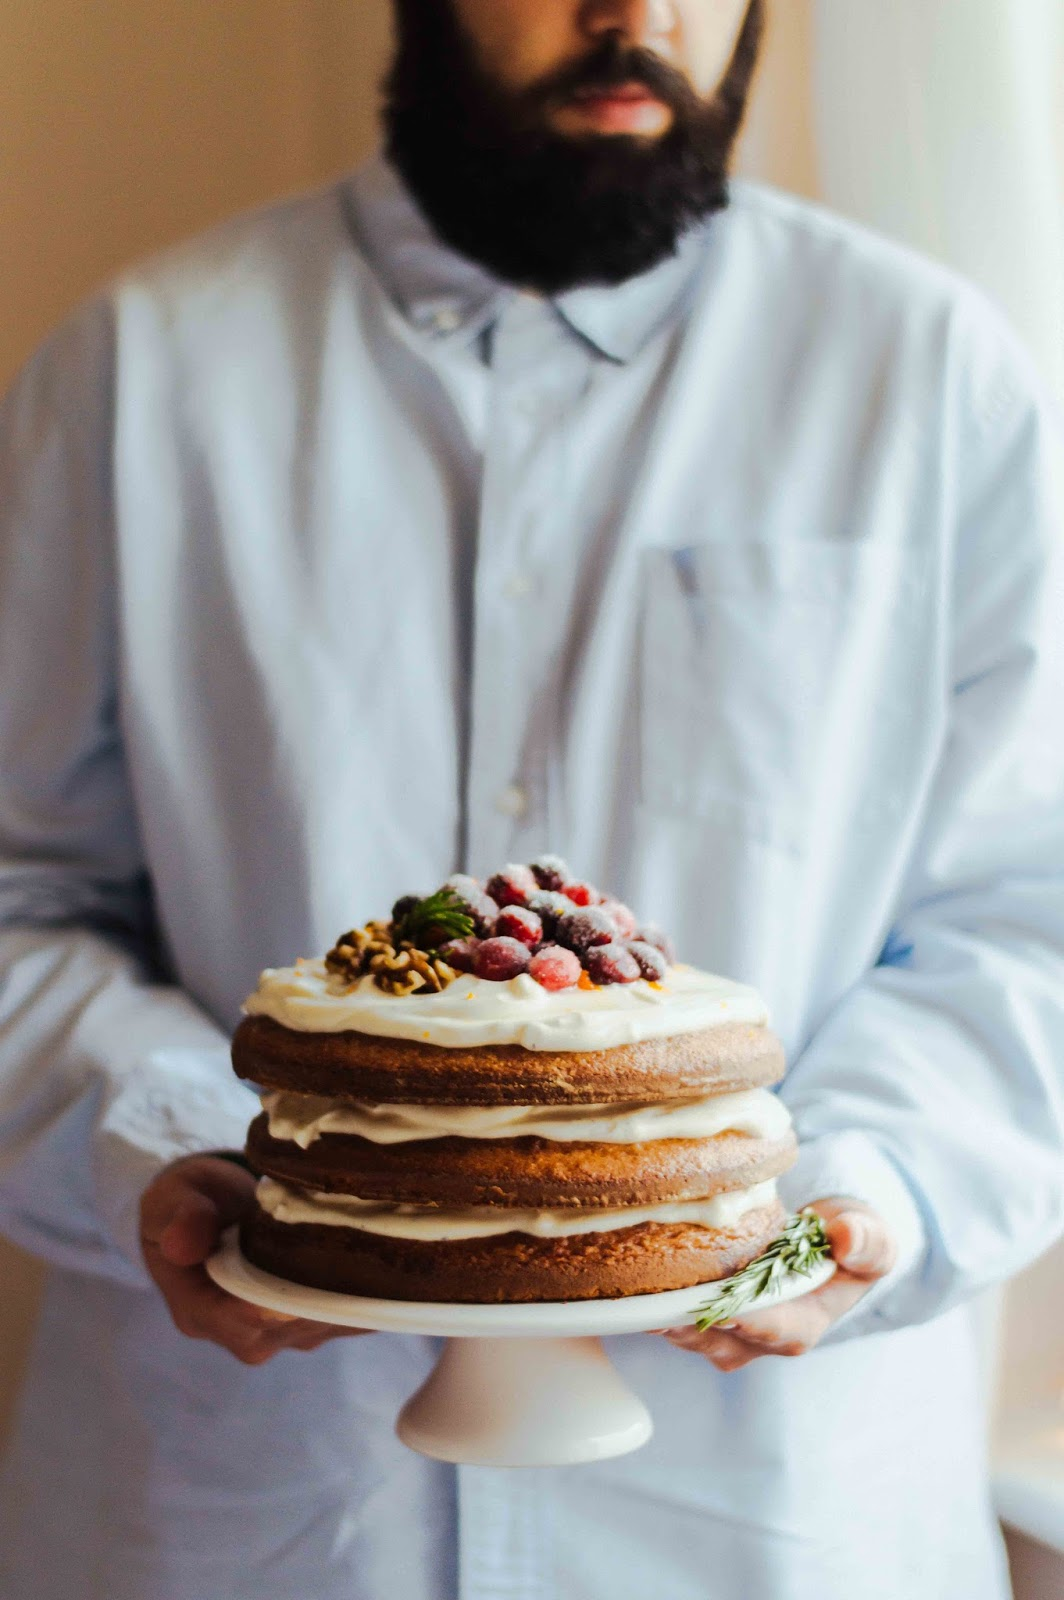 Rosemary Clementine Gingerbread Layer Cake | https://oandrajos.blogspot.com